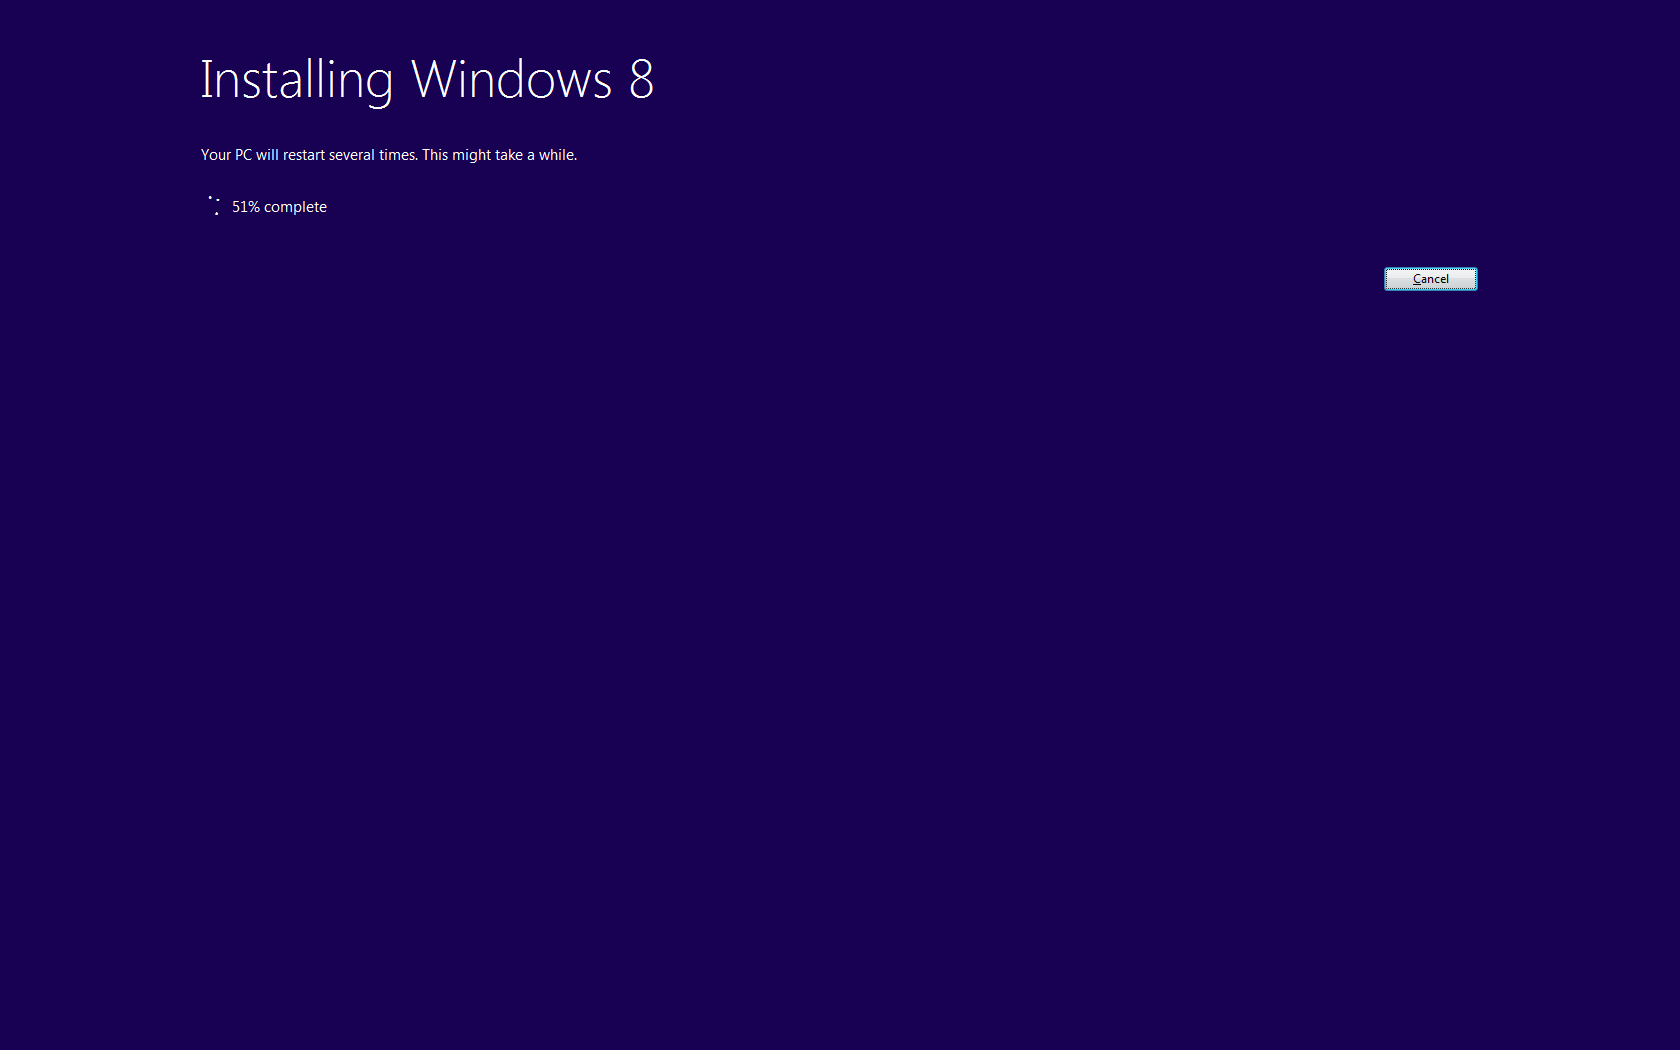 windows 8 upgrade install